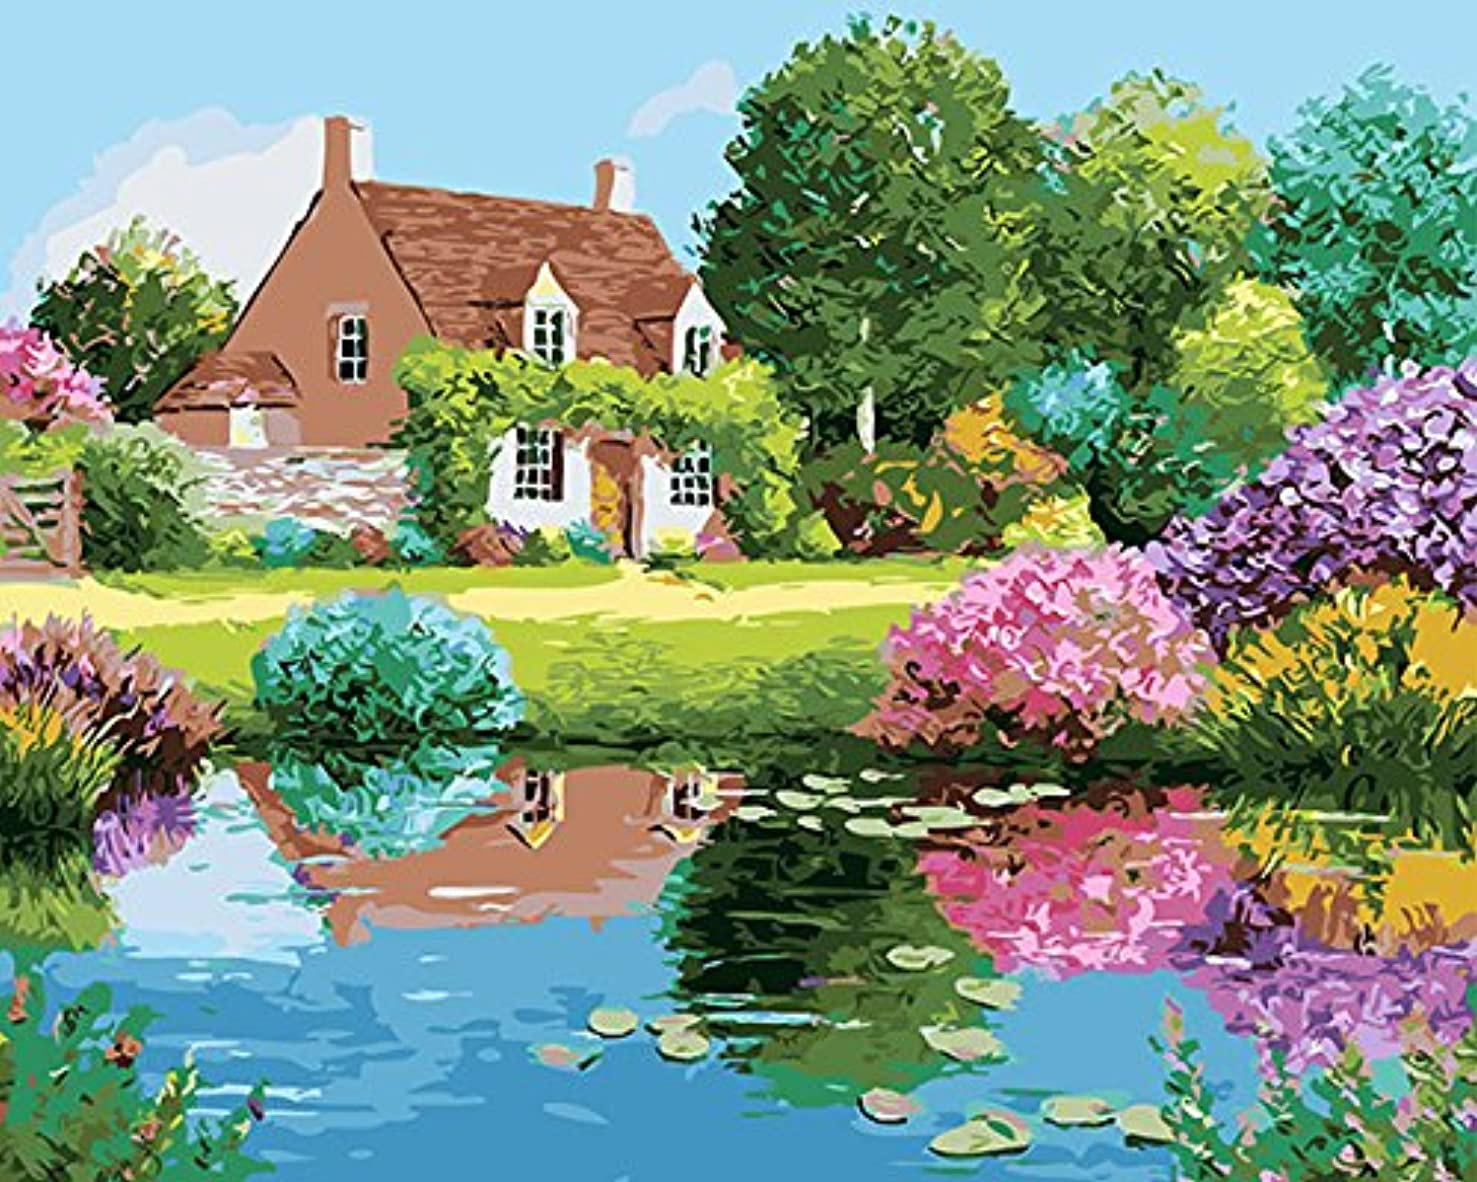 JynXos Paint By Number Hand Paintworks Digital DIY Oil Painting - House Garden River 16x20 Inch With Wooden Framed